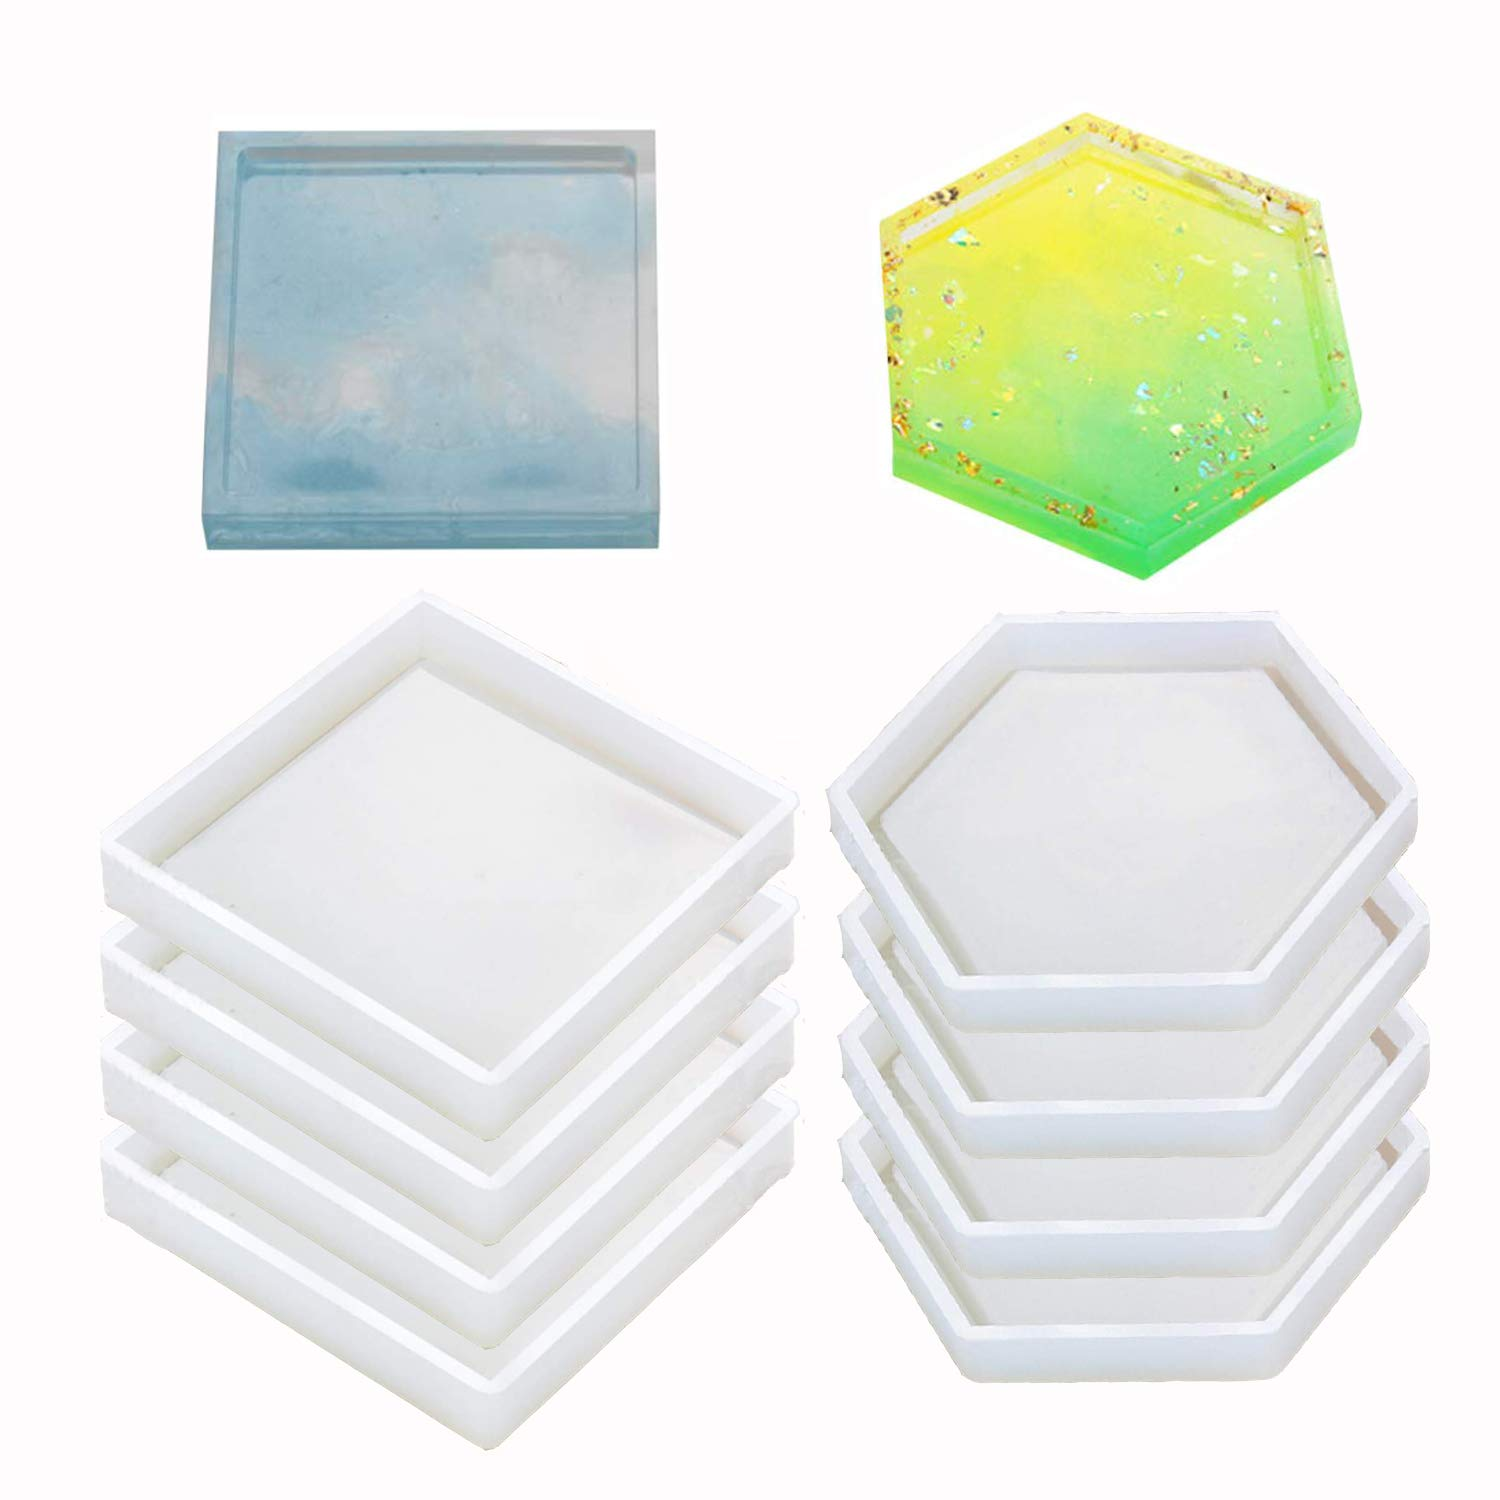 8 Pack Silicone Coaster Molds Including Square, Hexagon - Silicone Resin Mold, Clear Epoxy Molds for Casting with Resin, Concrete, Cement and Polymer Clay by Buytra